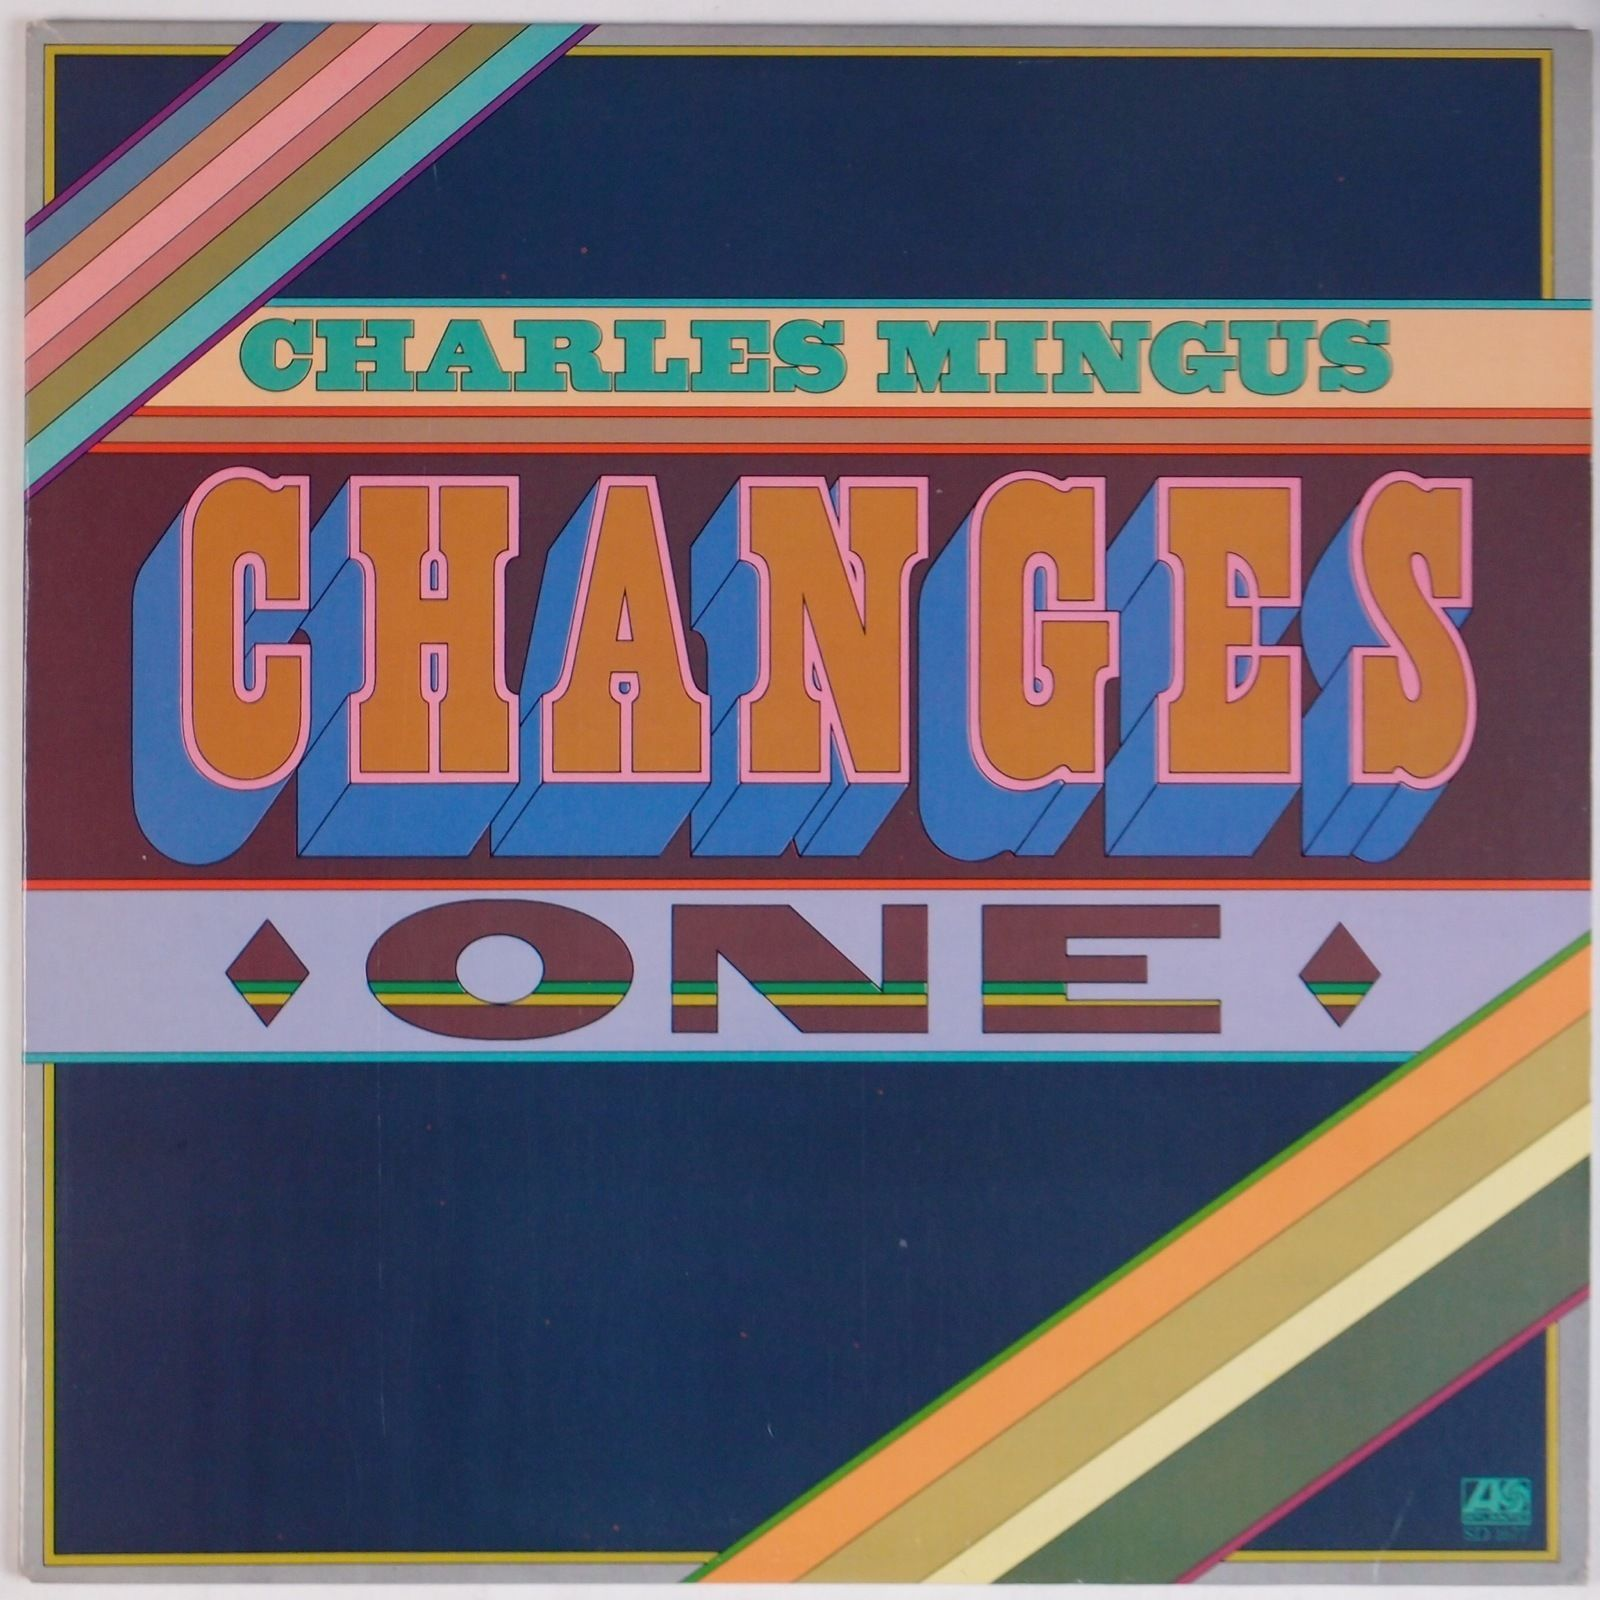 Paula Scher's design for Charles Mingus,  Changes One , 1975